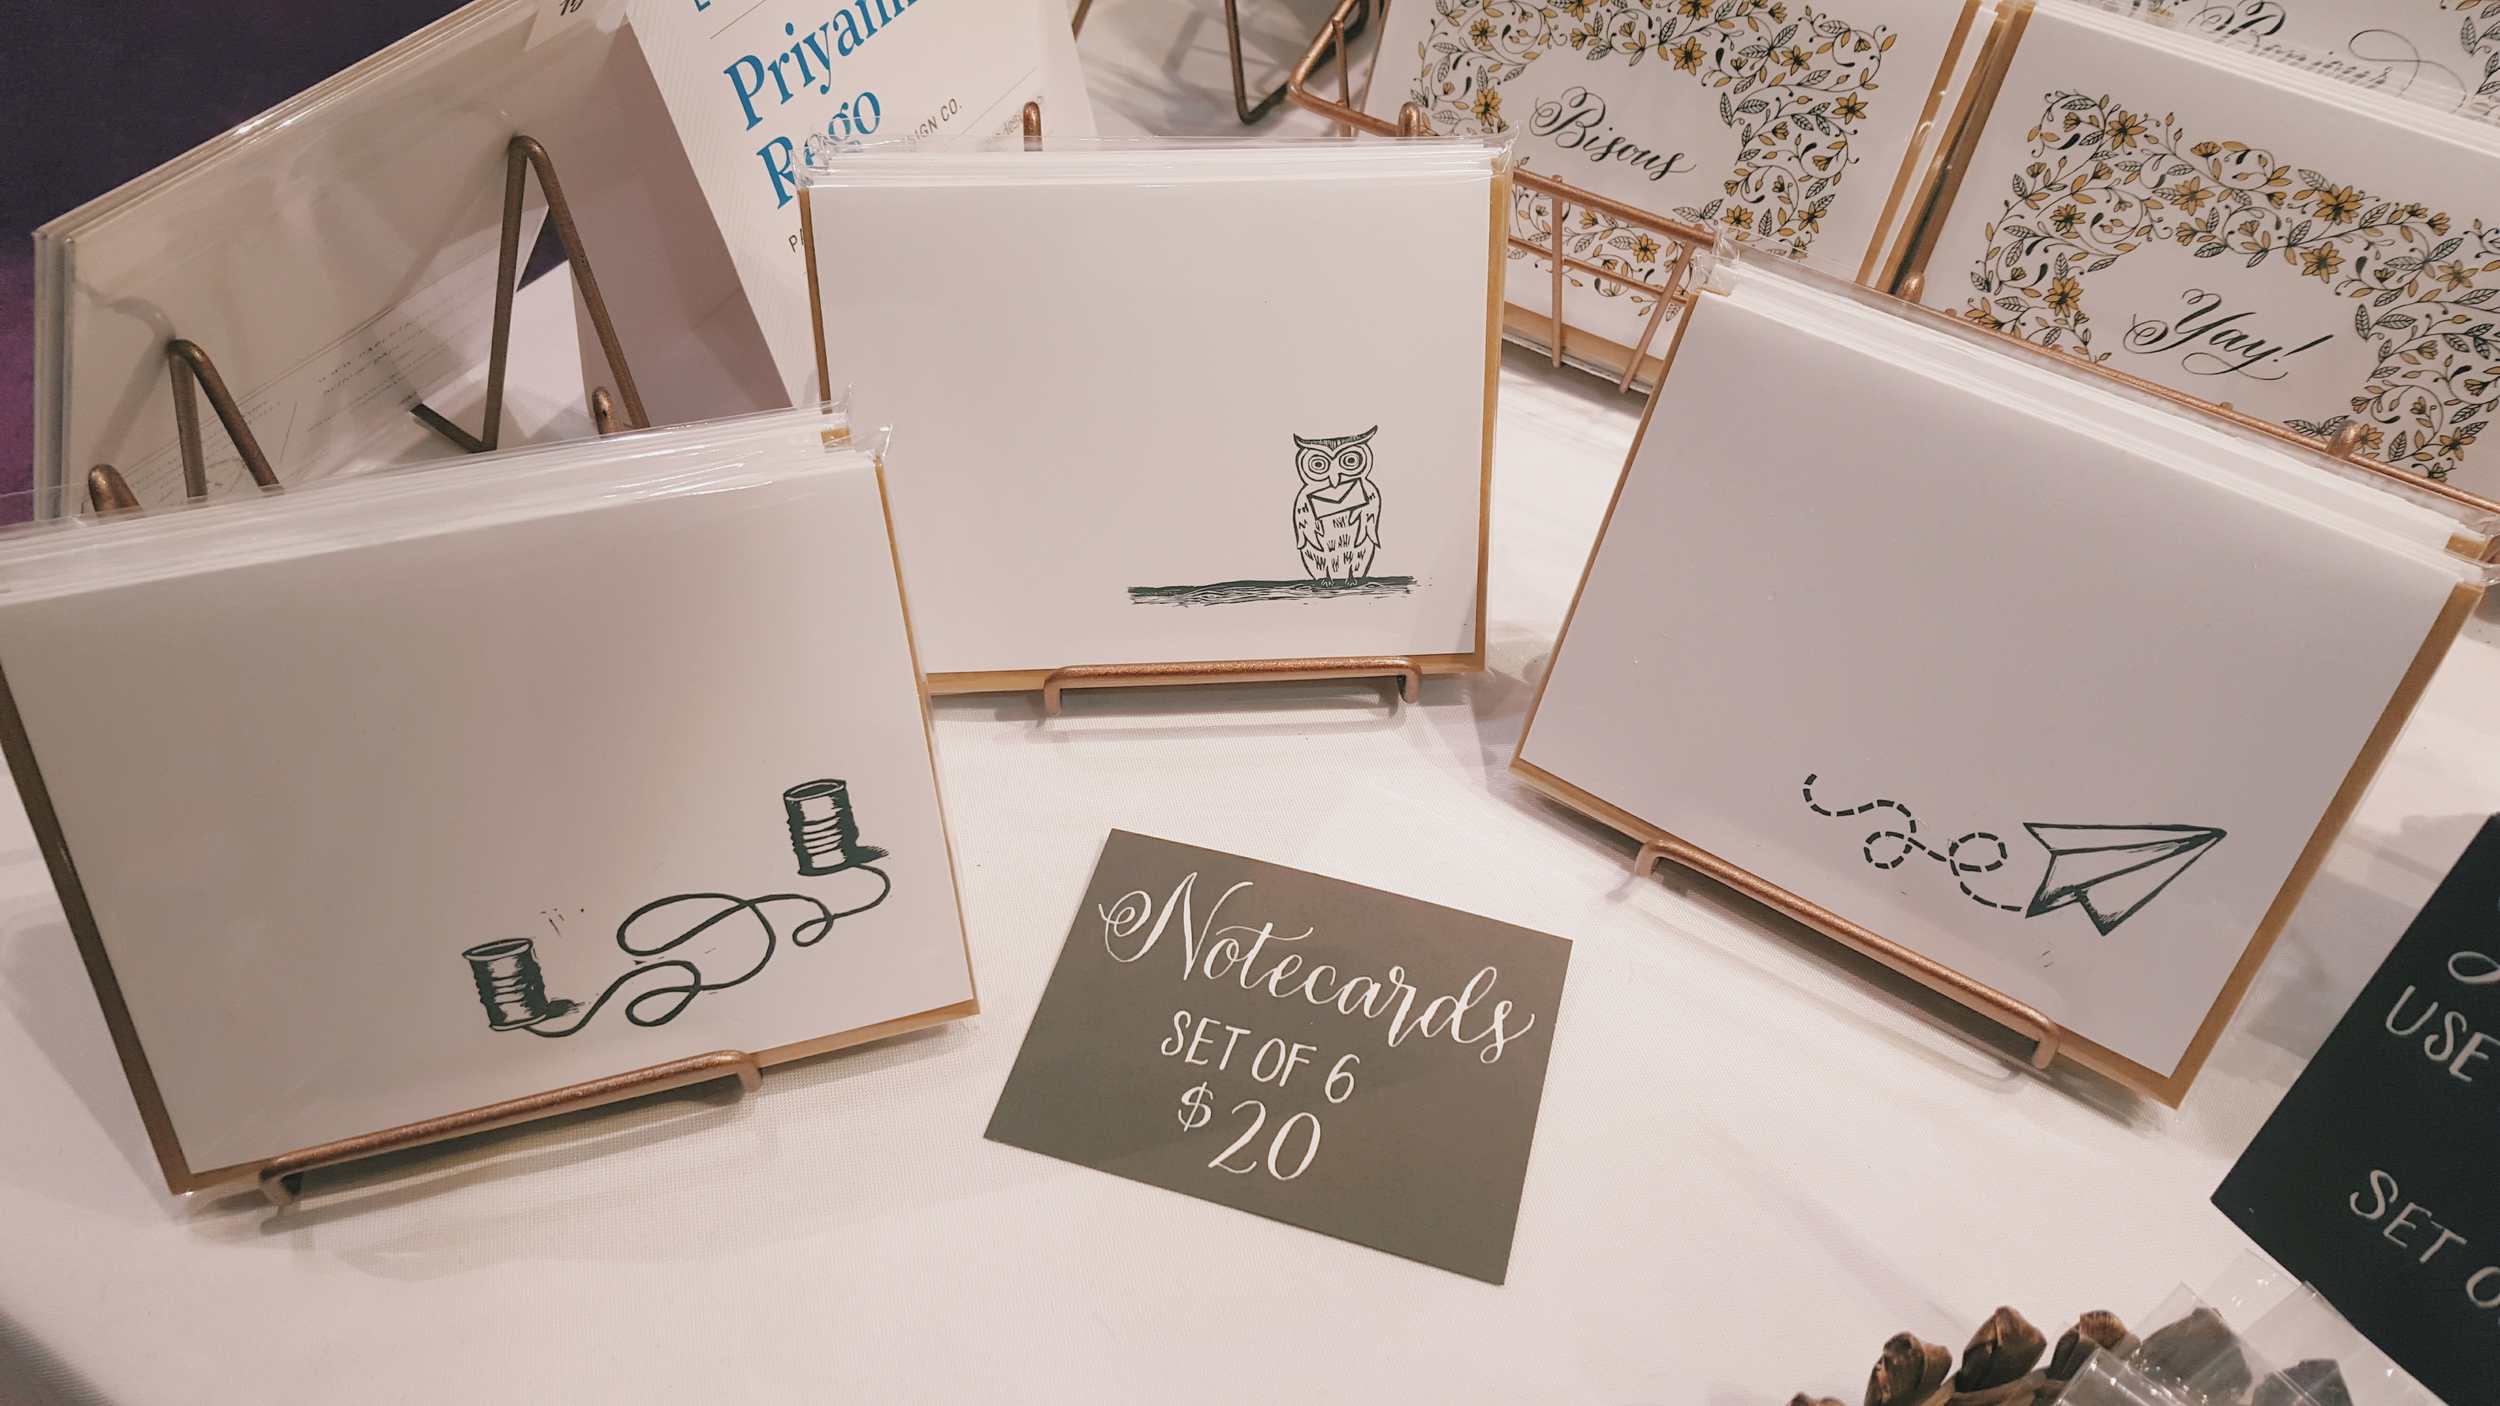 I sold out of the owl notecards!